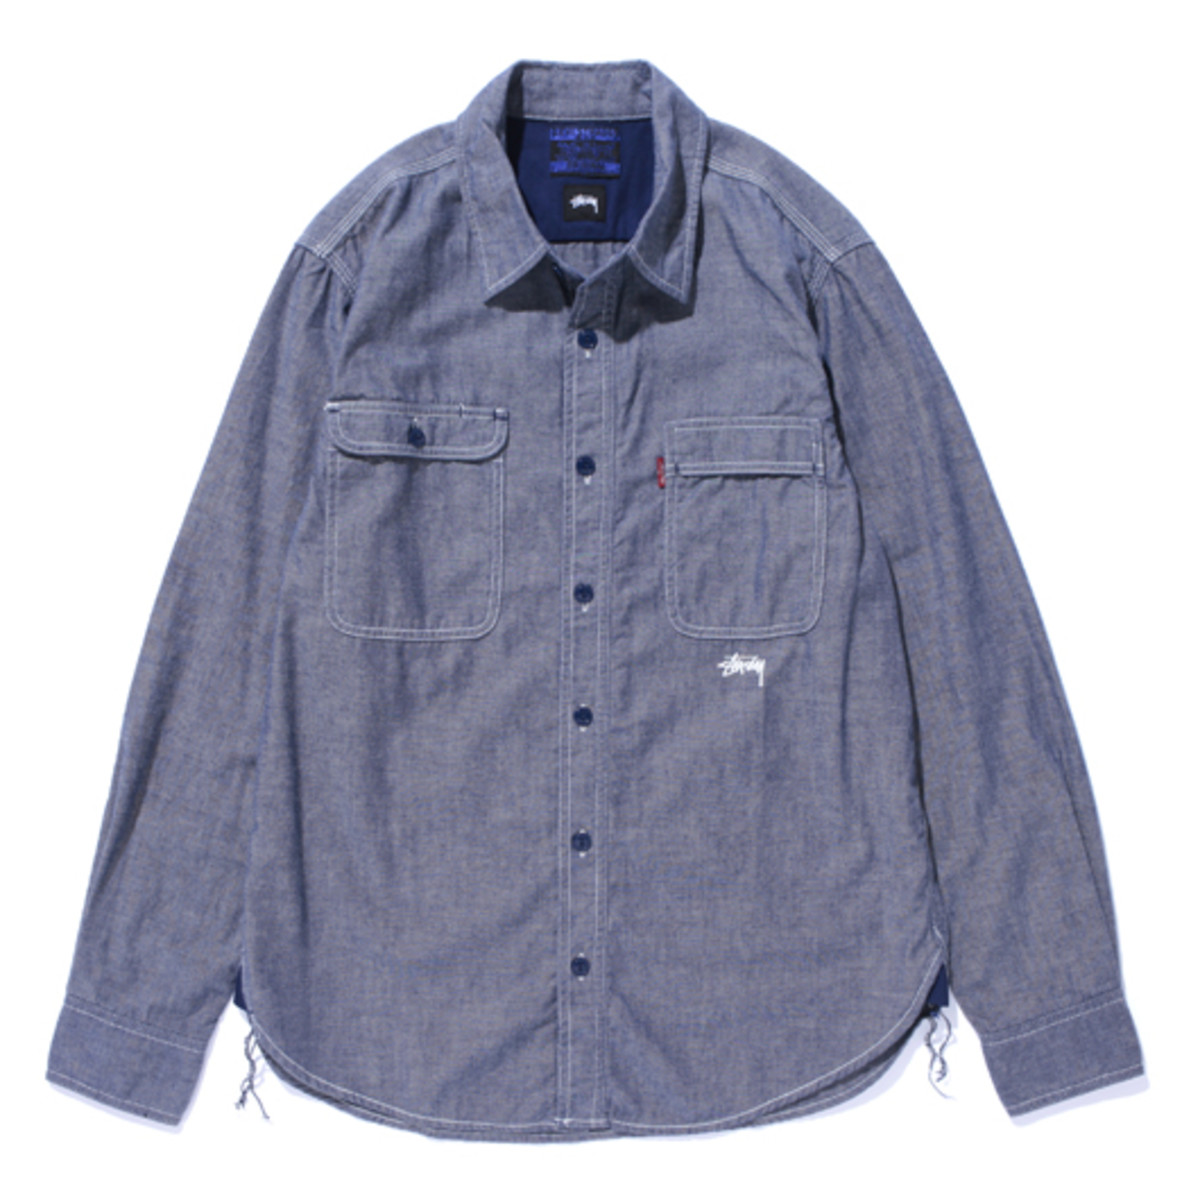 chambray-work-shirt-01